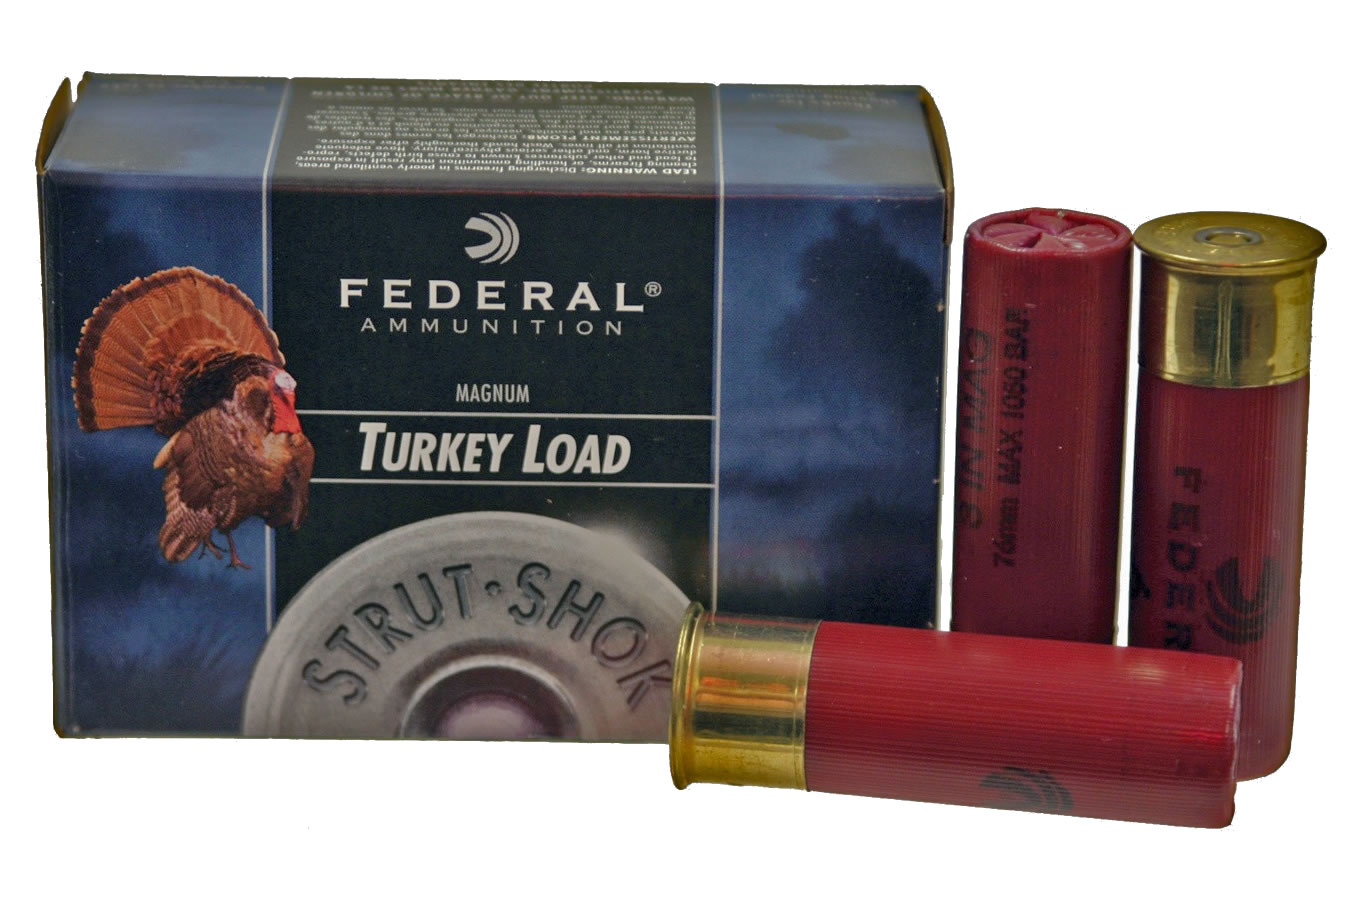 12 GA 3-1/2 IN 2 OZ STRUT-SHOK TURKEY